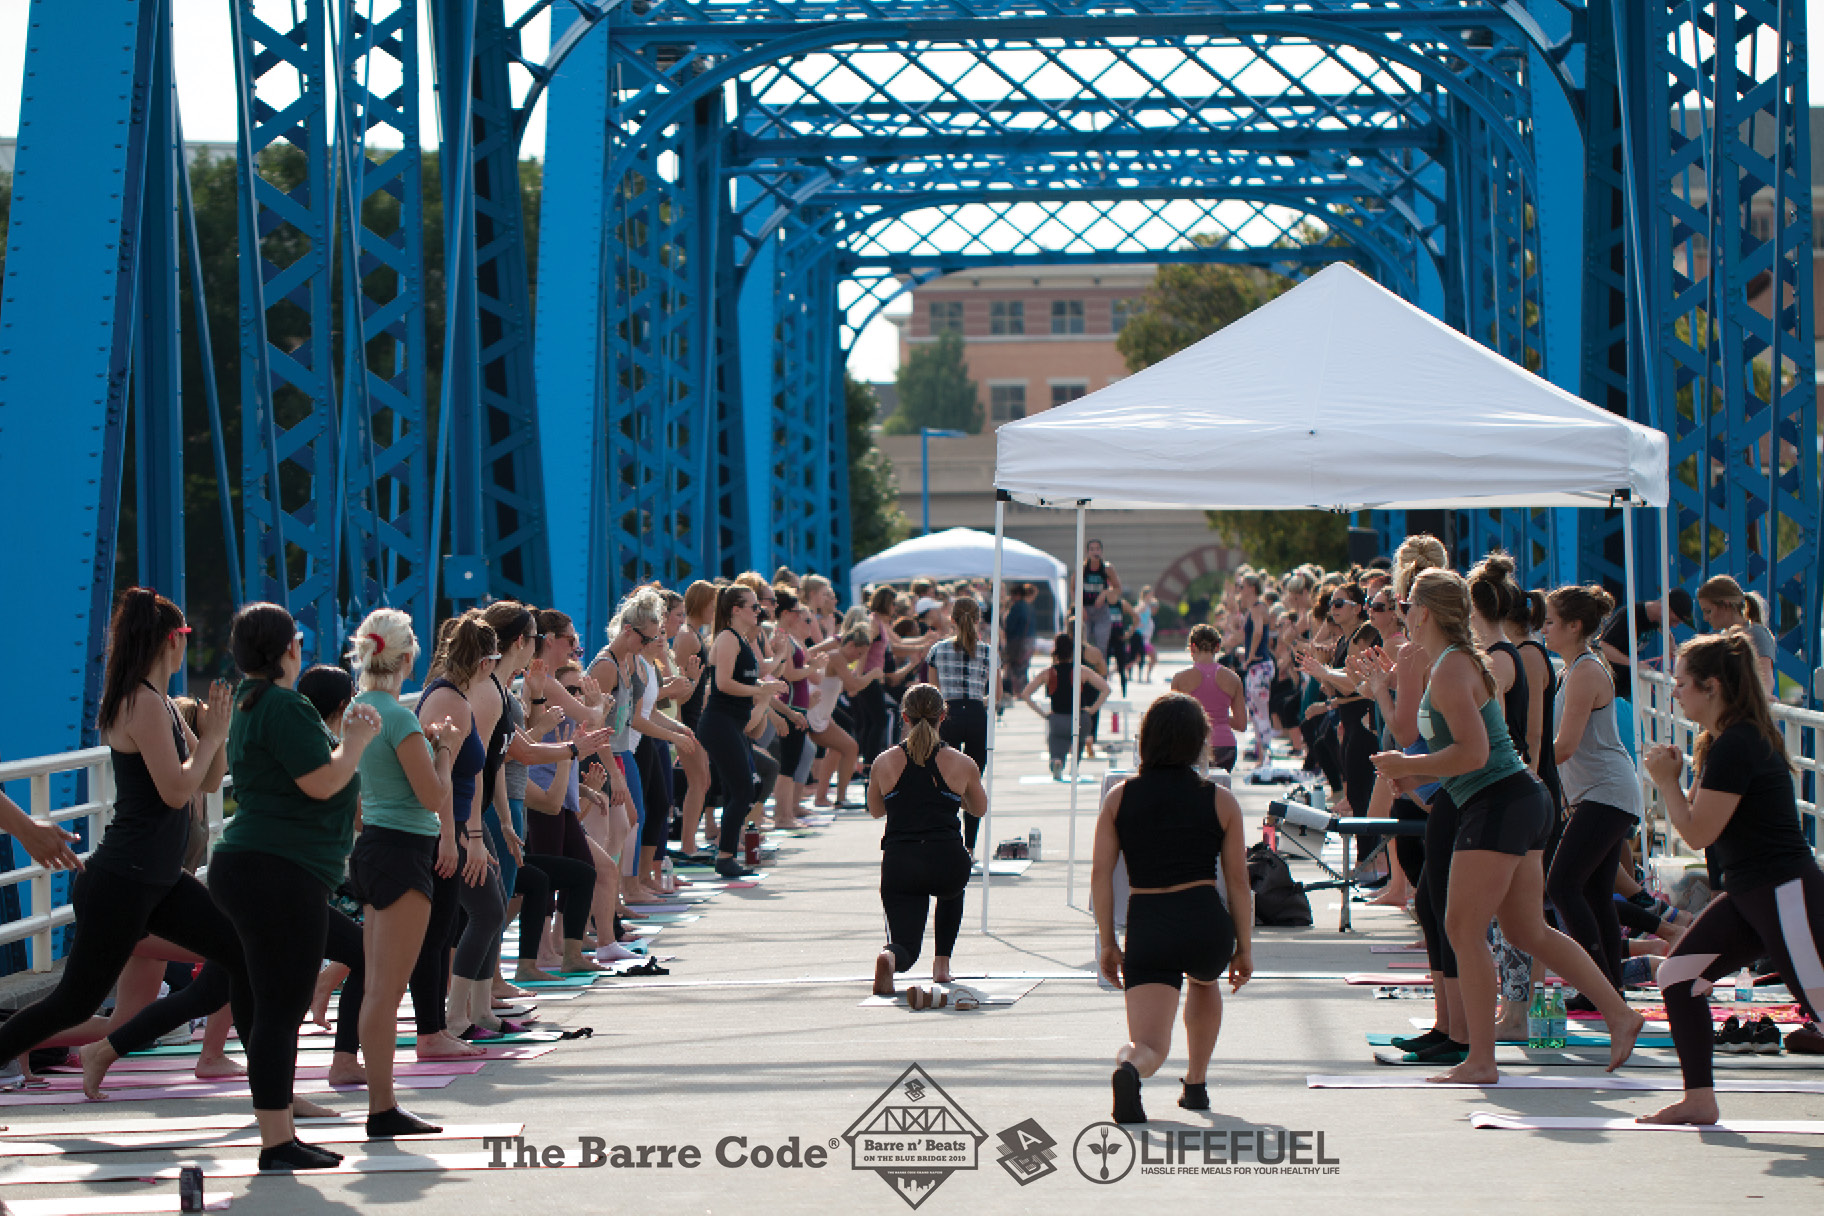 190805_the_barre_code_lifefuel_49.jpg